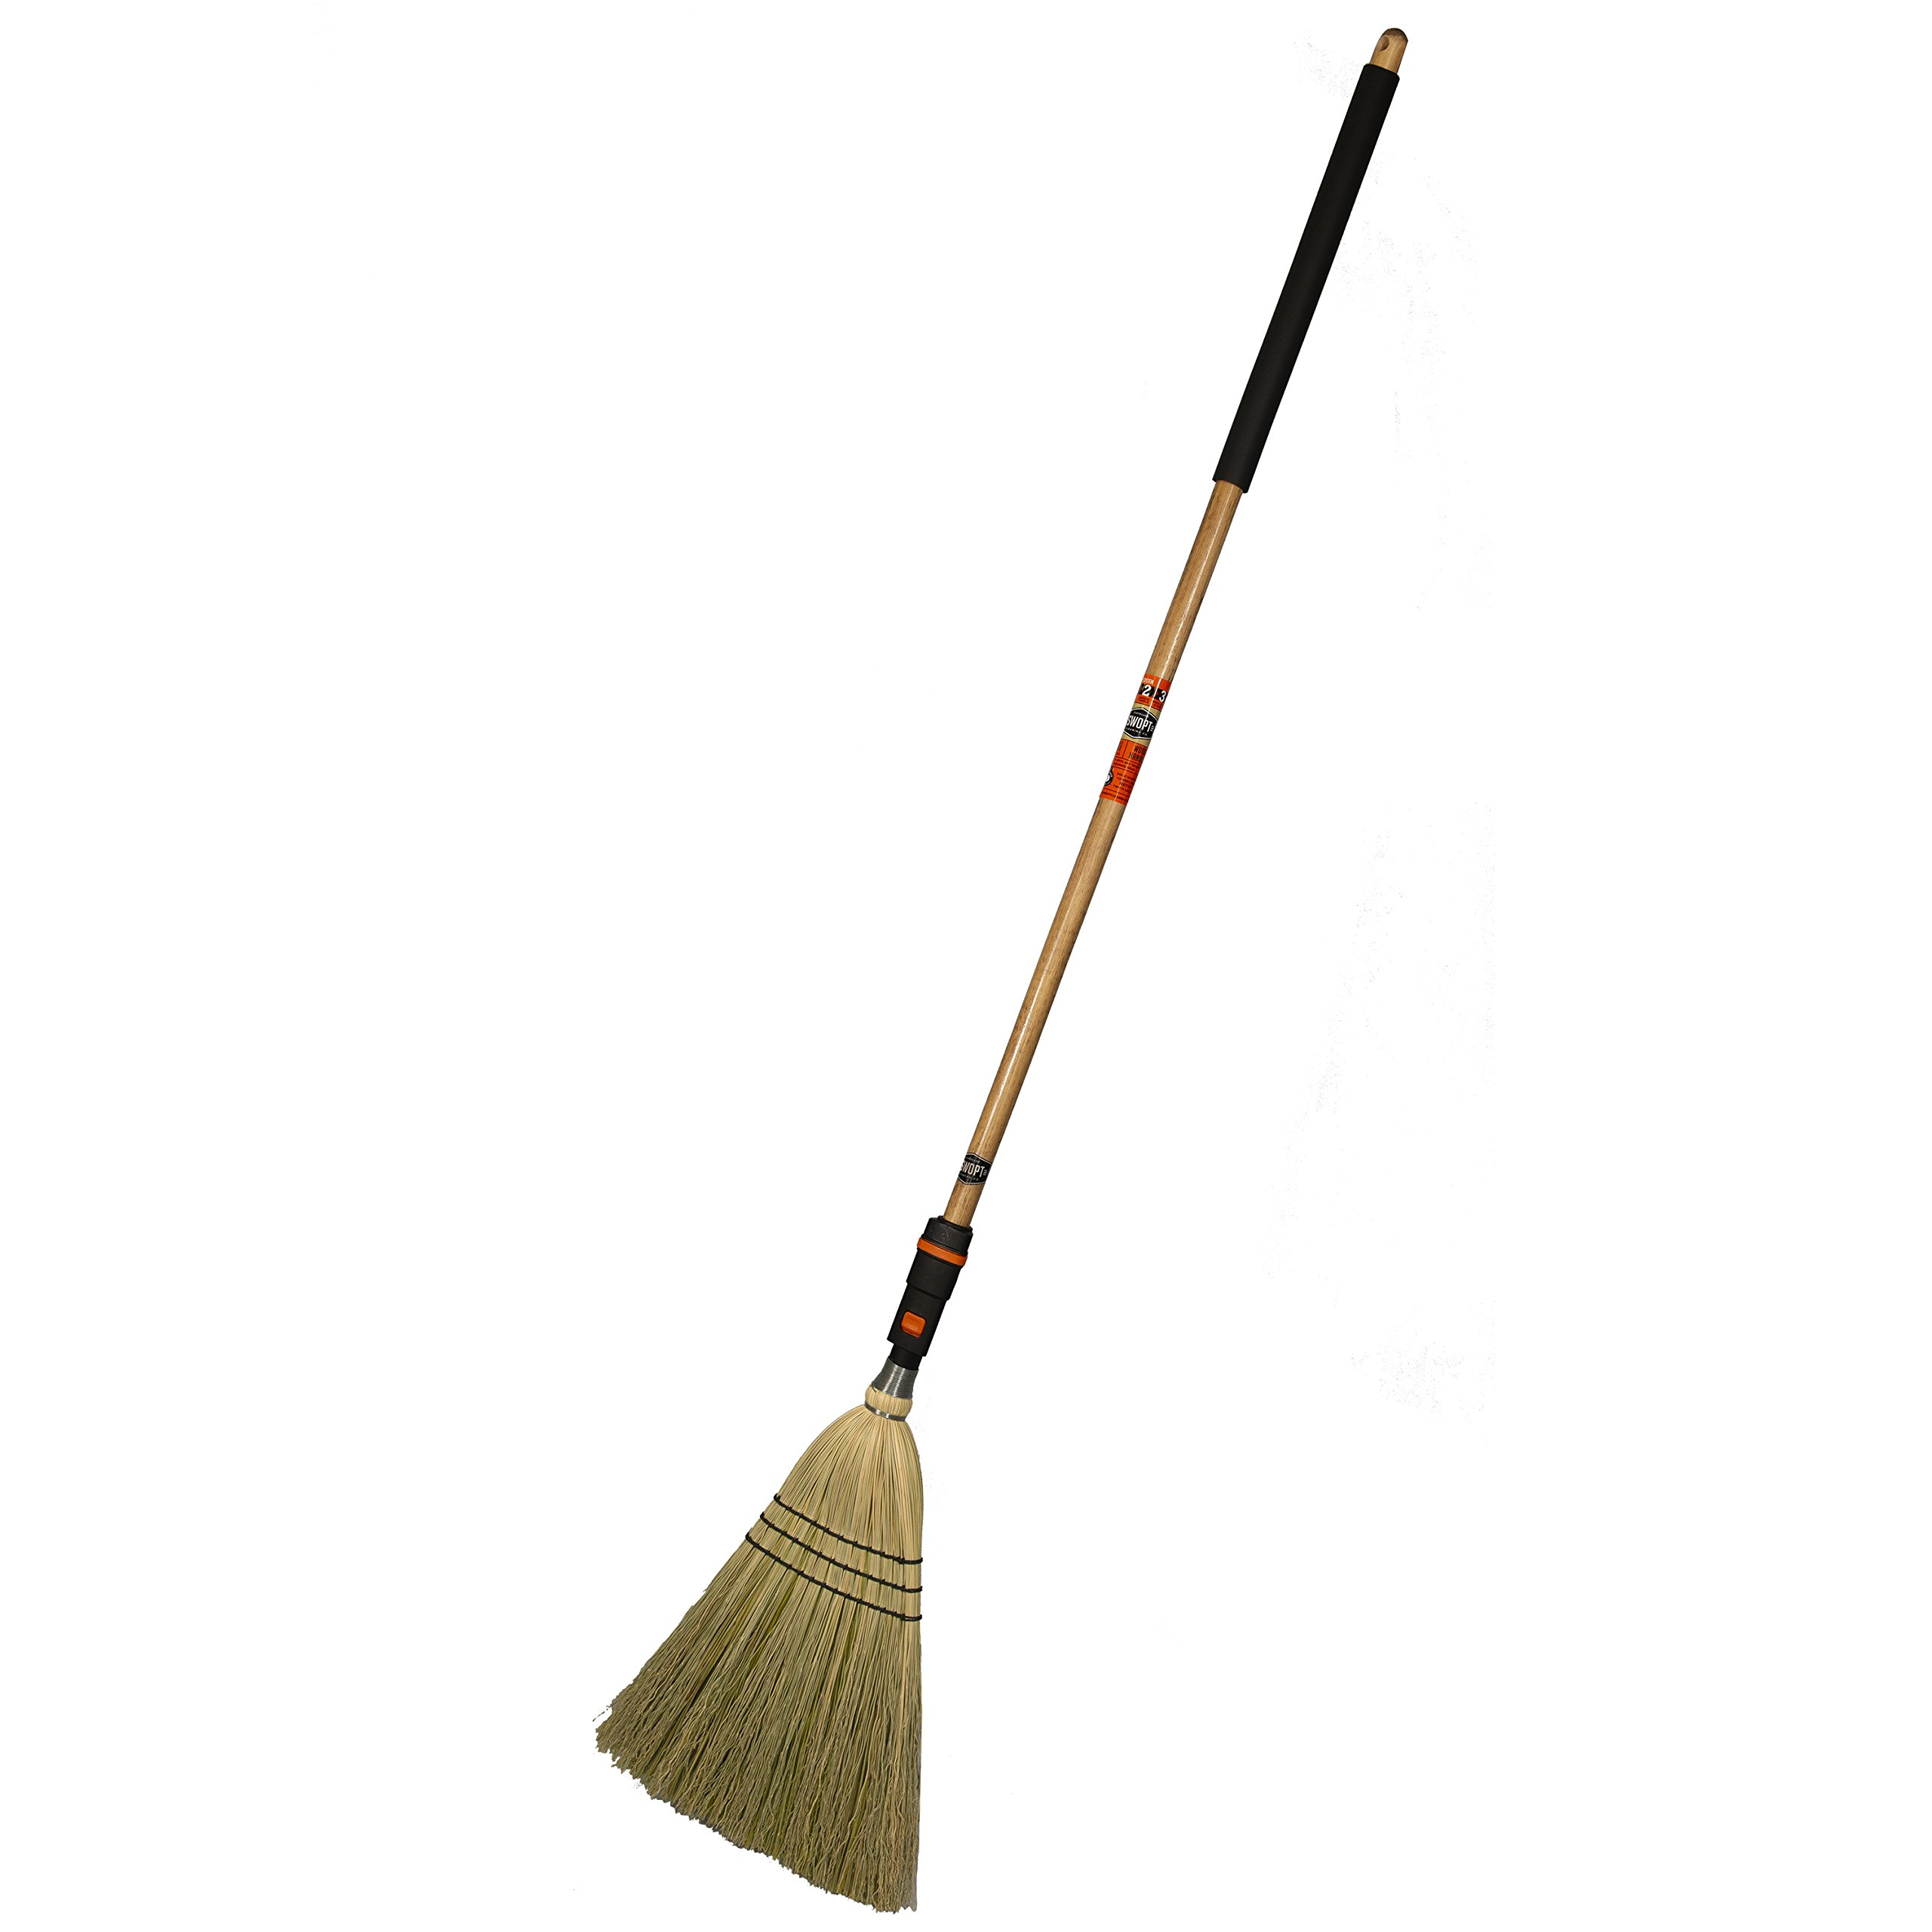 SWOPT Heavy-Duty Corn Broom – 48'' Comfort Grip Wooden Handle – EVA Foam Comfort Grip for Stability & Comfort – Handle Interchangeable with Other SWOPT Products – Indoor & Outdoor Use